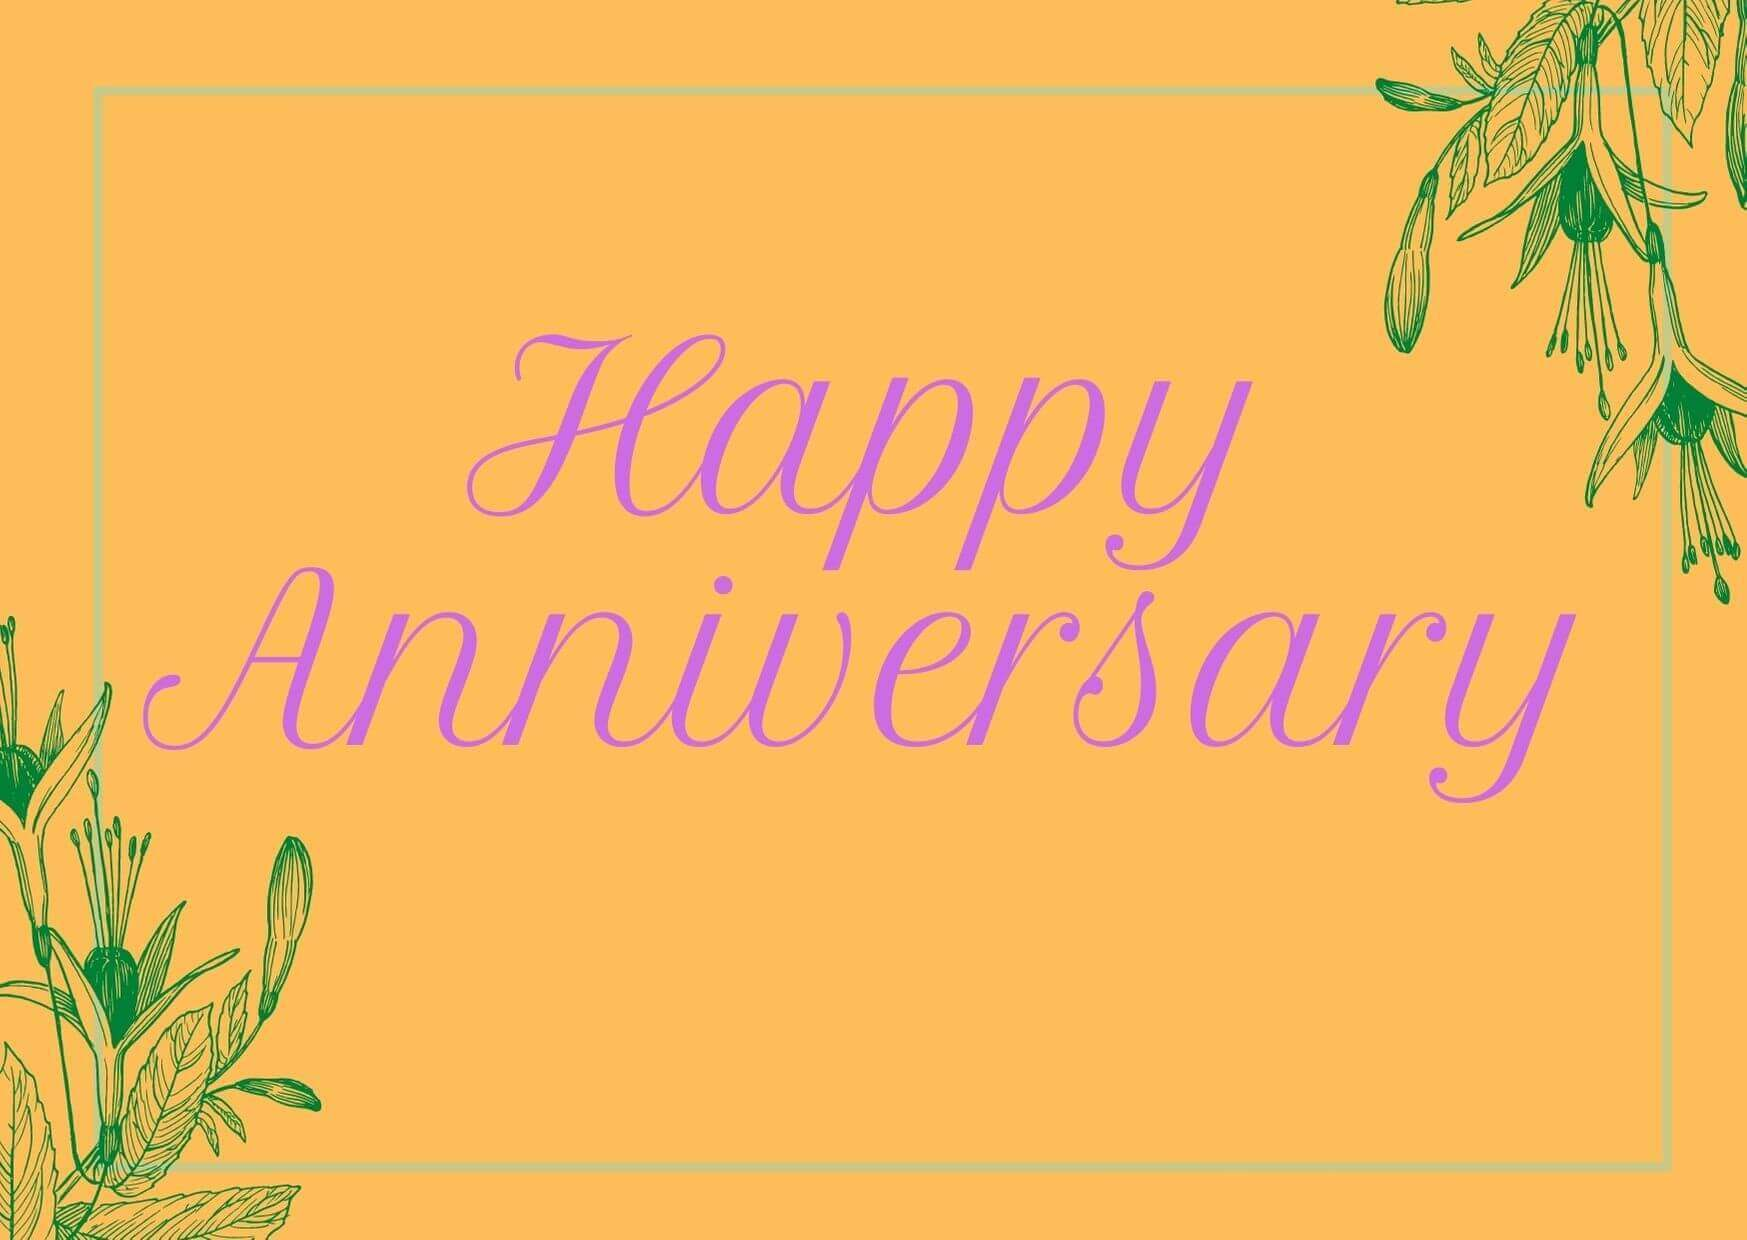 Wedding Anniversary Wishes for Sister Image